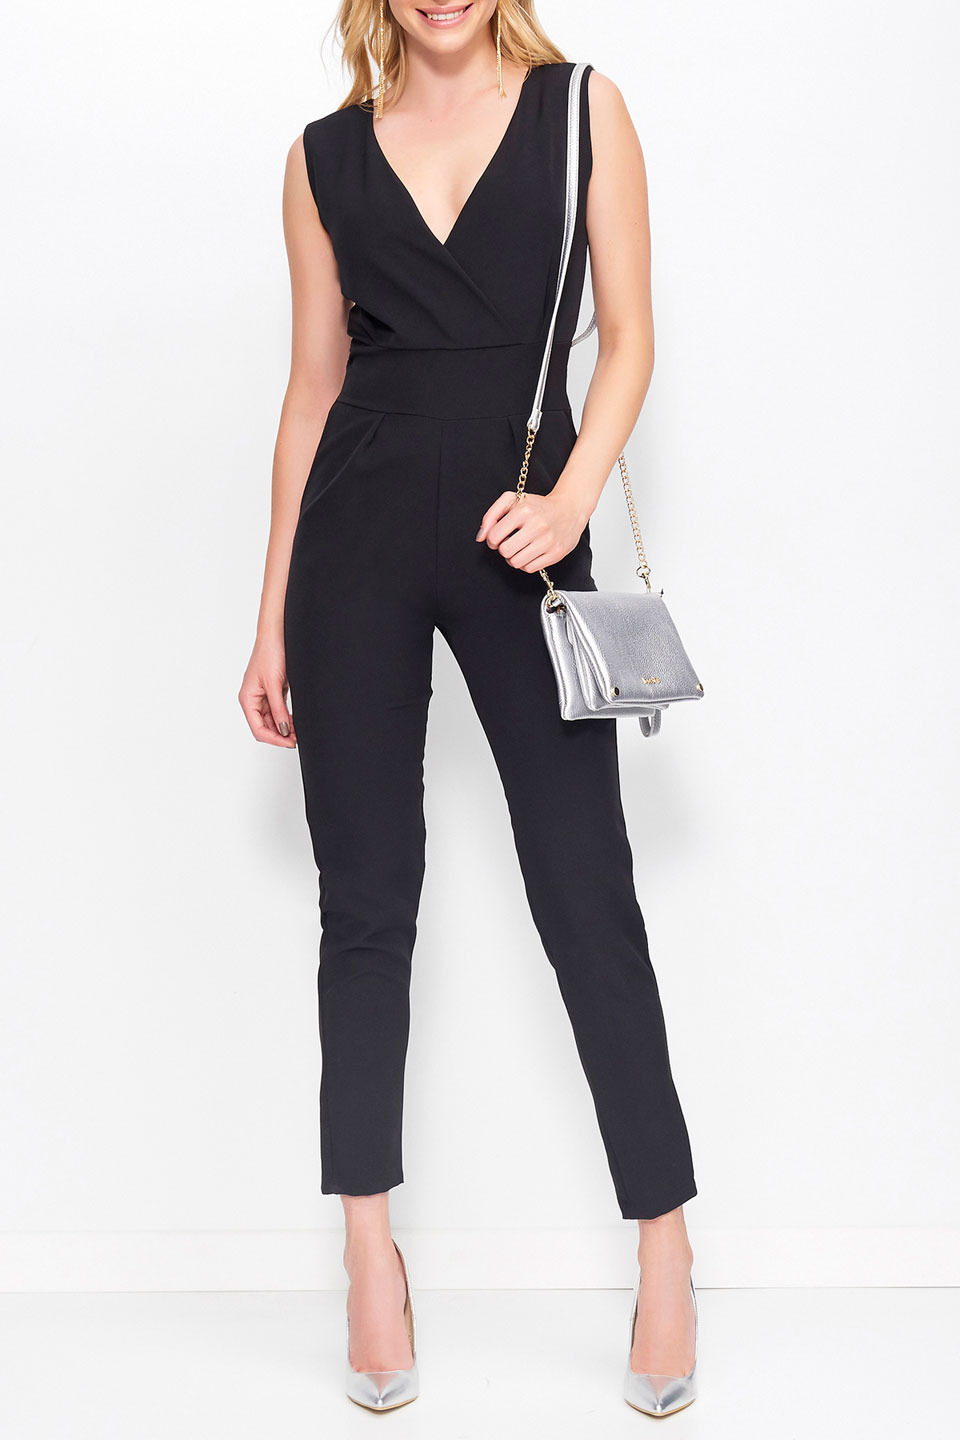 CHERRY OVERALL IN BLACK